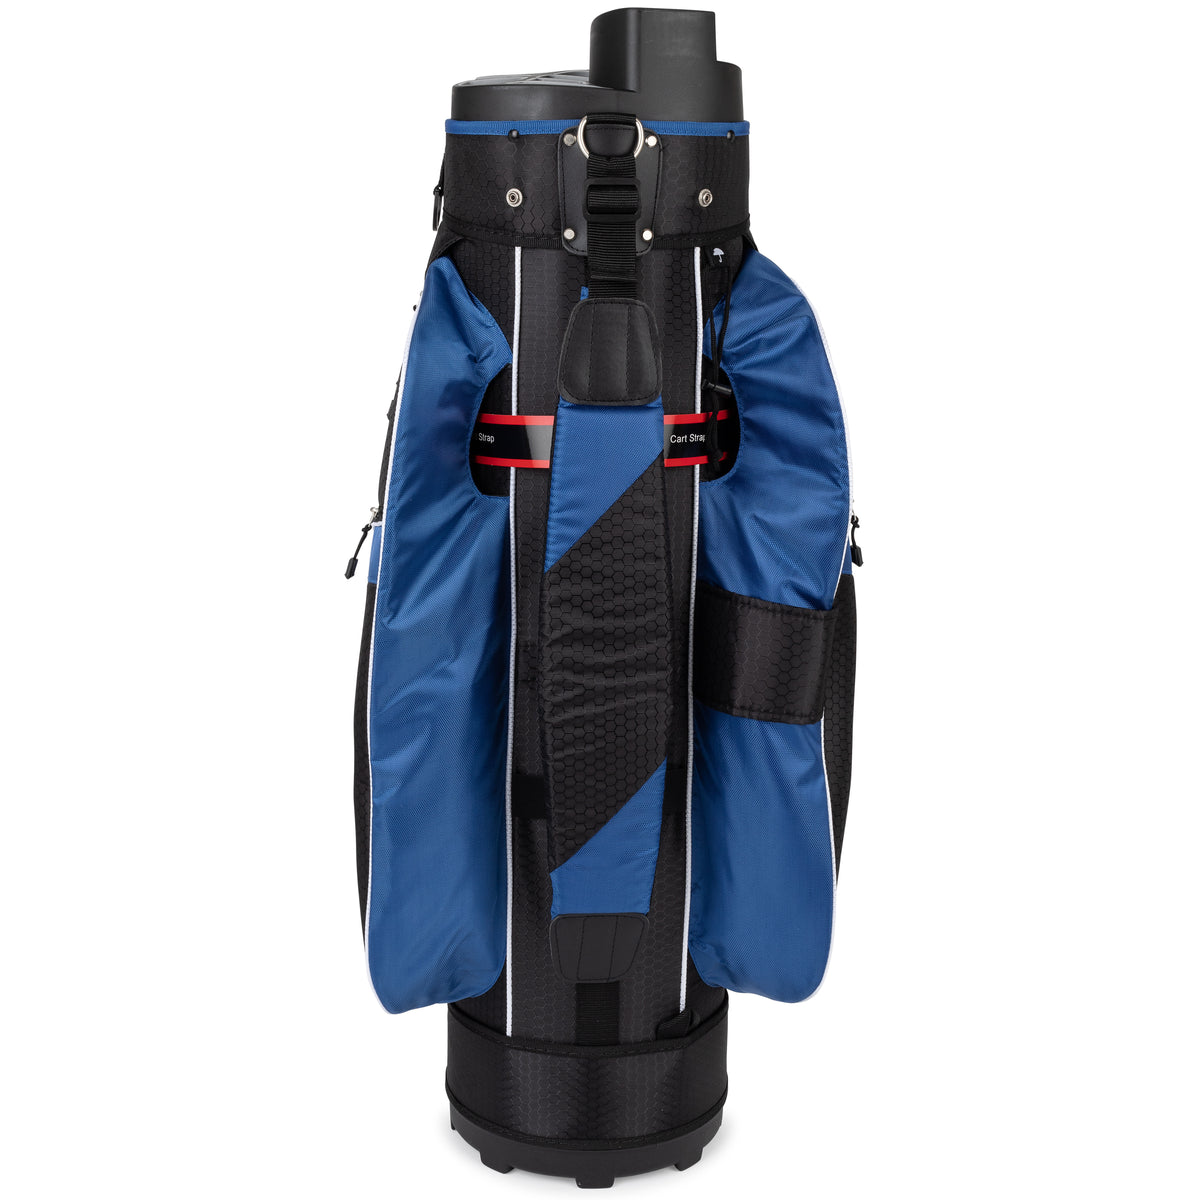 Founders Club Premium 14 Way Cart Bag - Blue